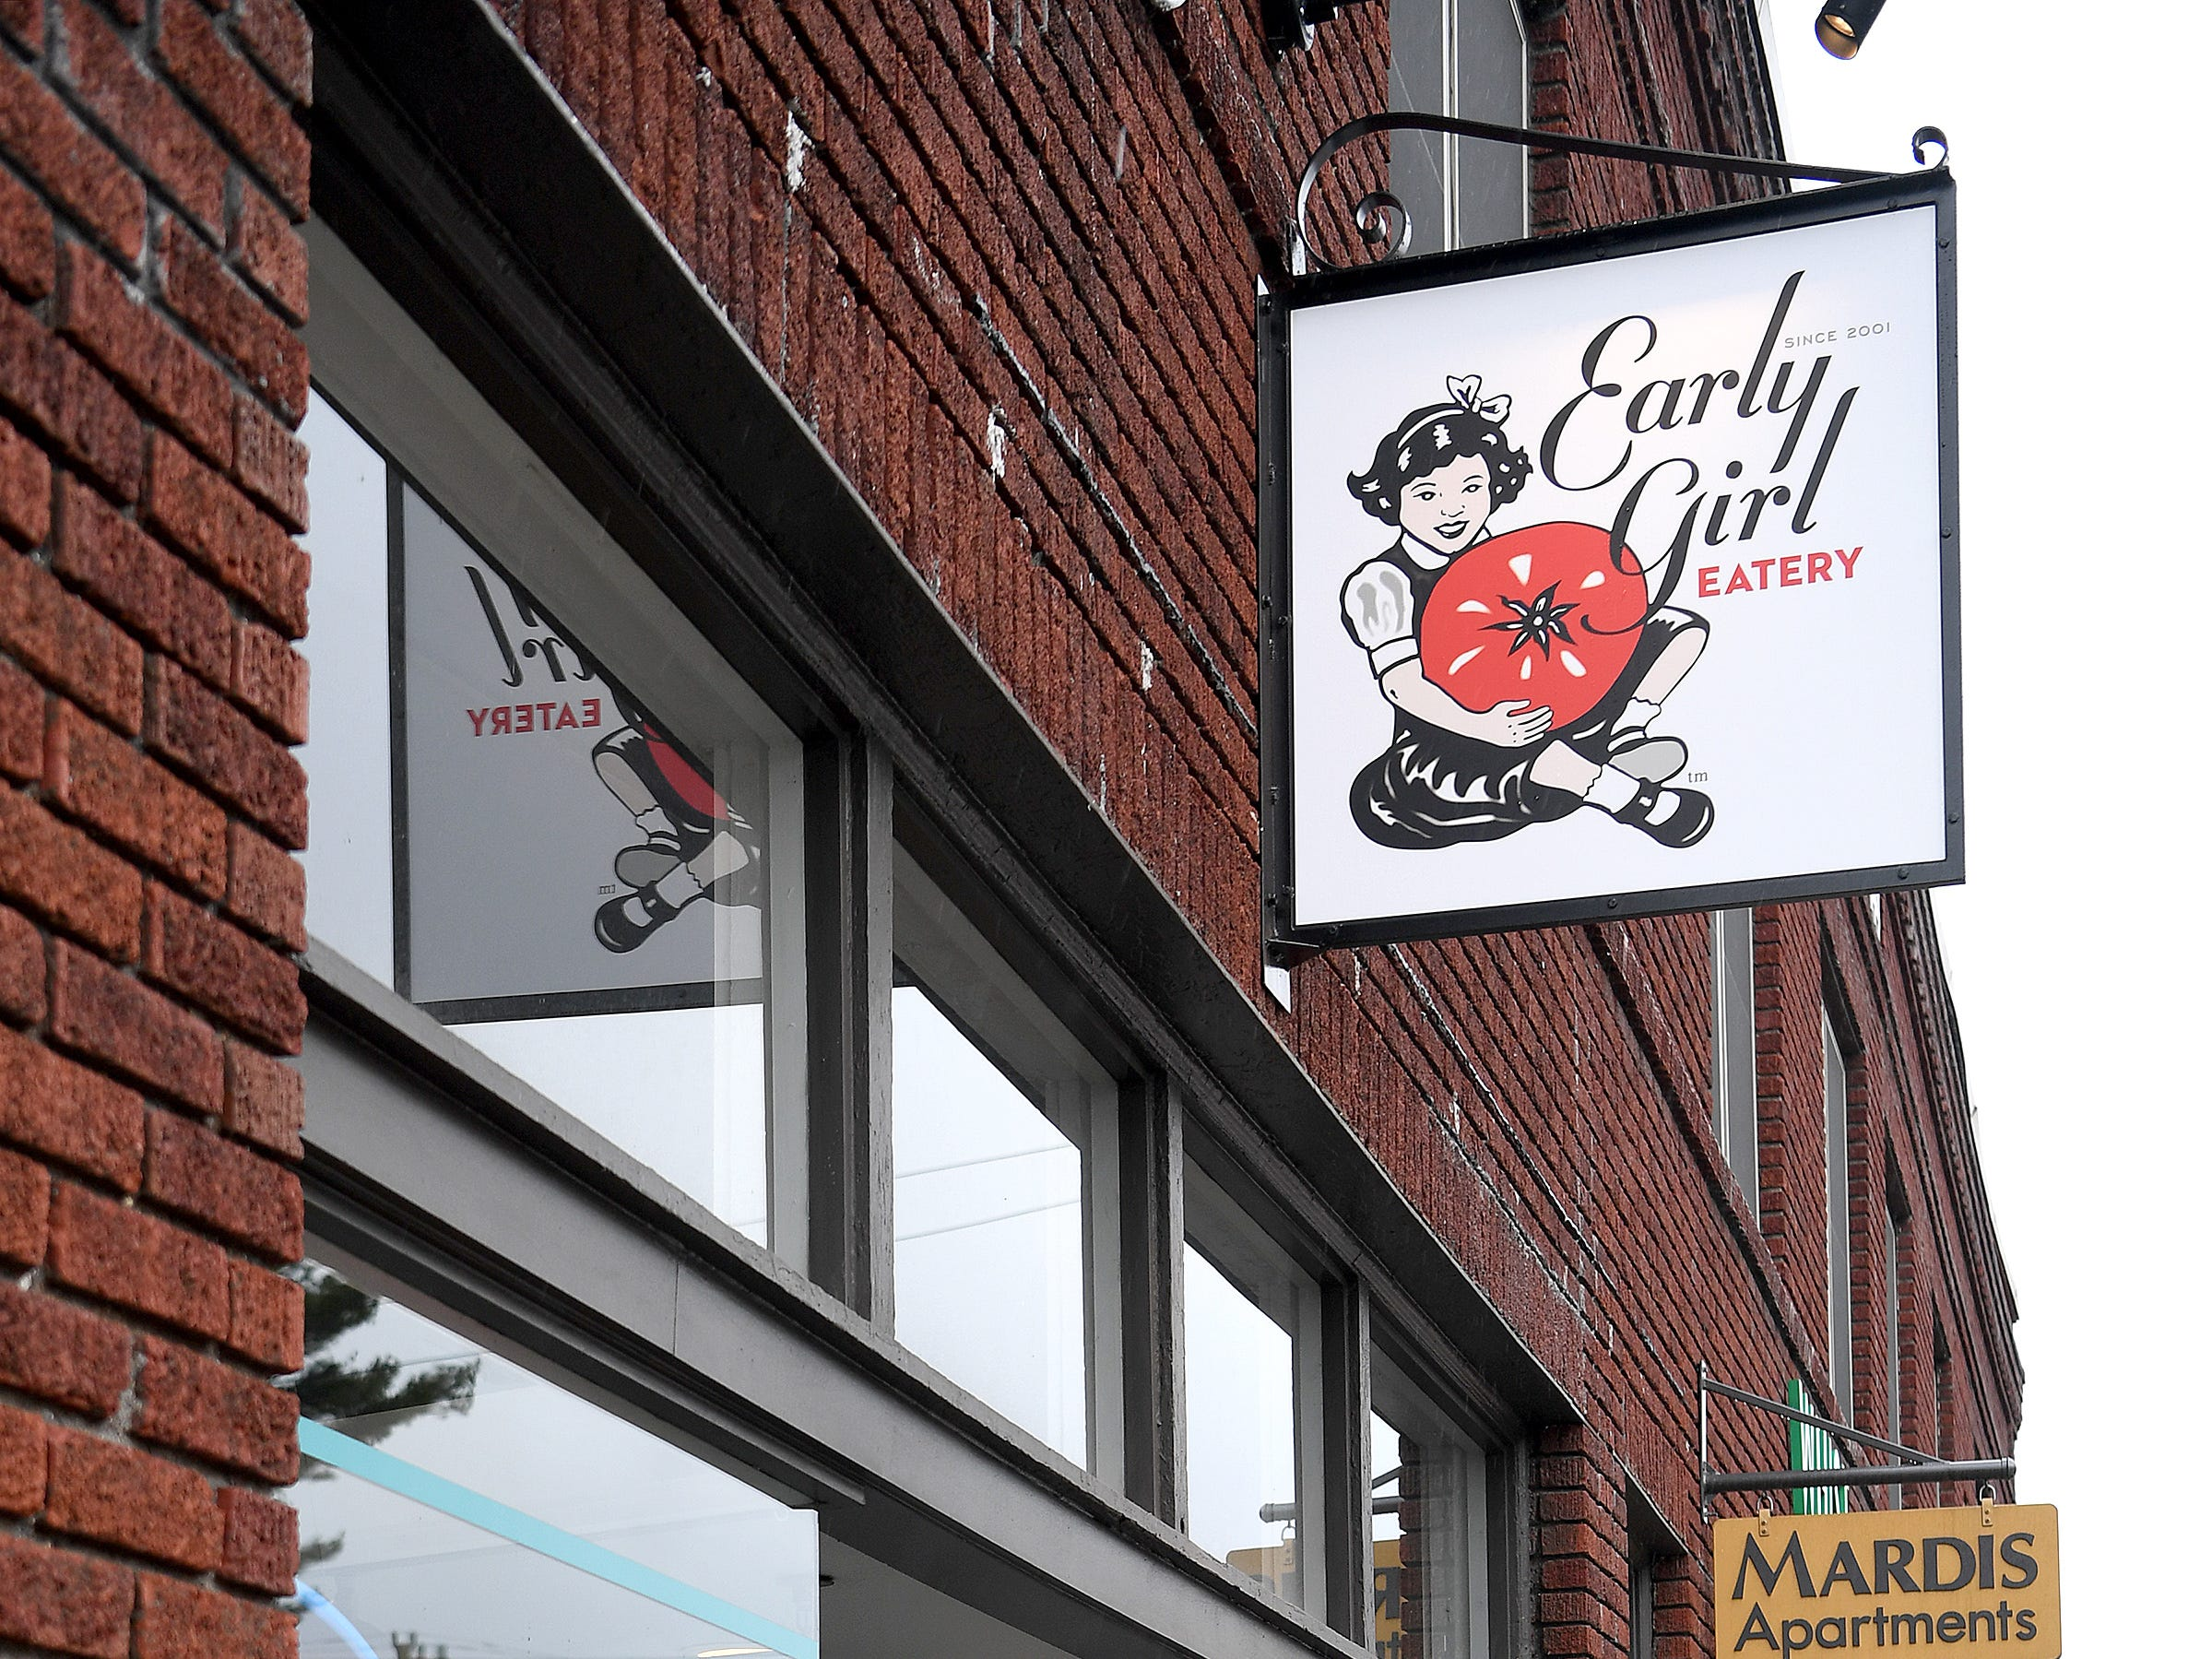 Early Girl's West Asheville location is in Haywood Road's Mardis Building and serves breakfast all day as well as lunch options.